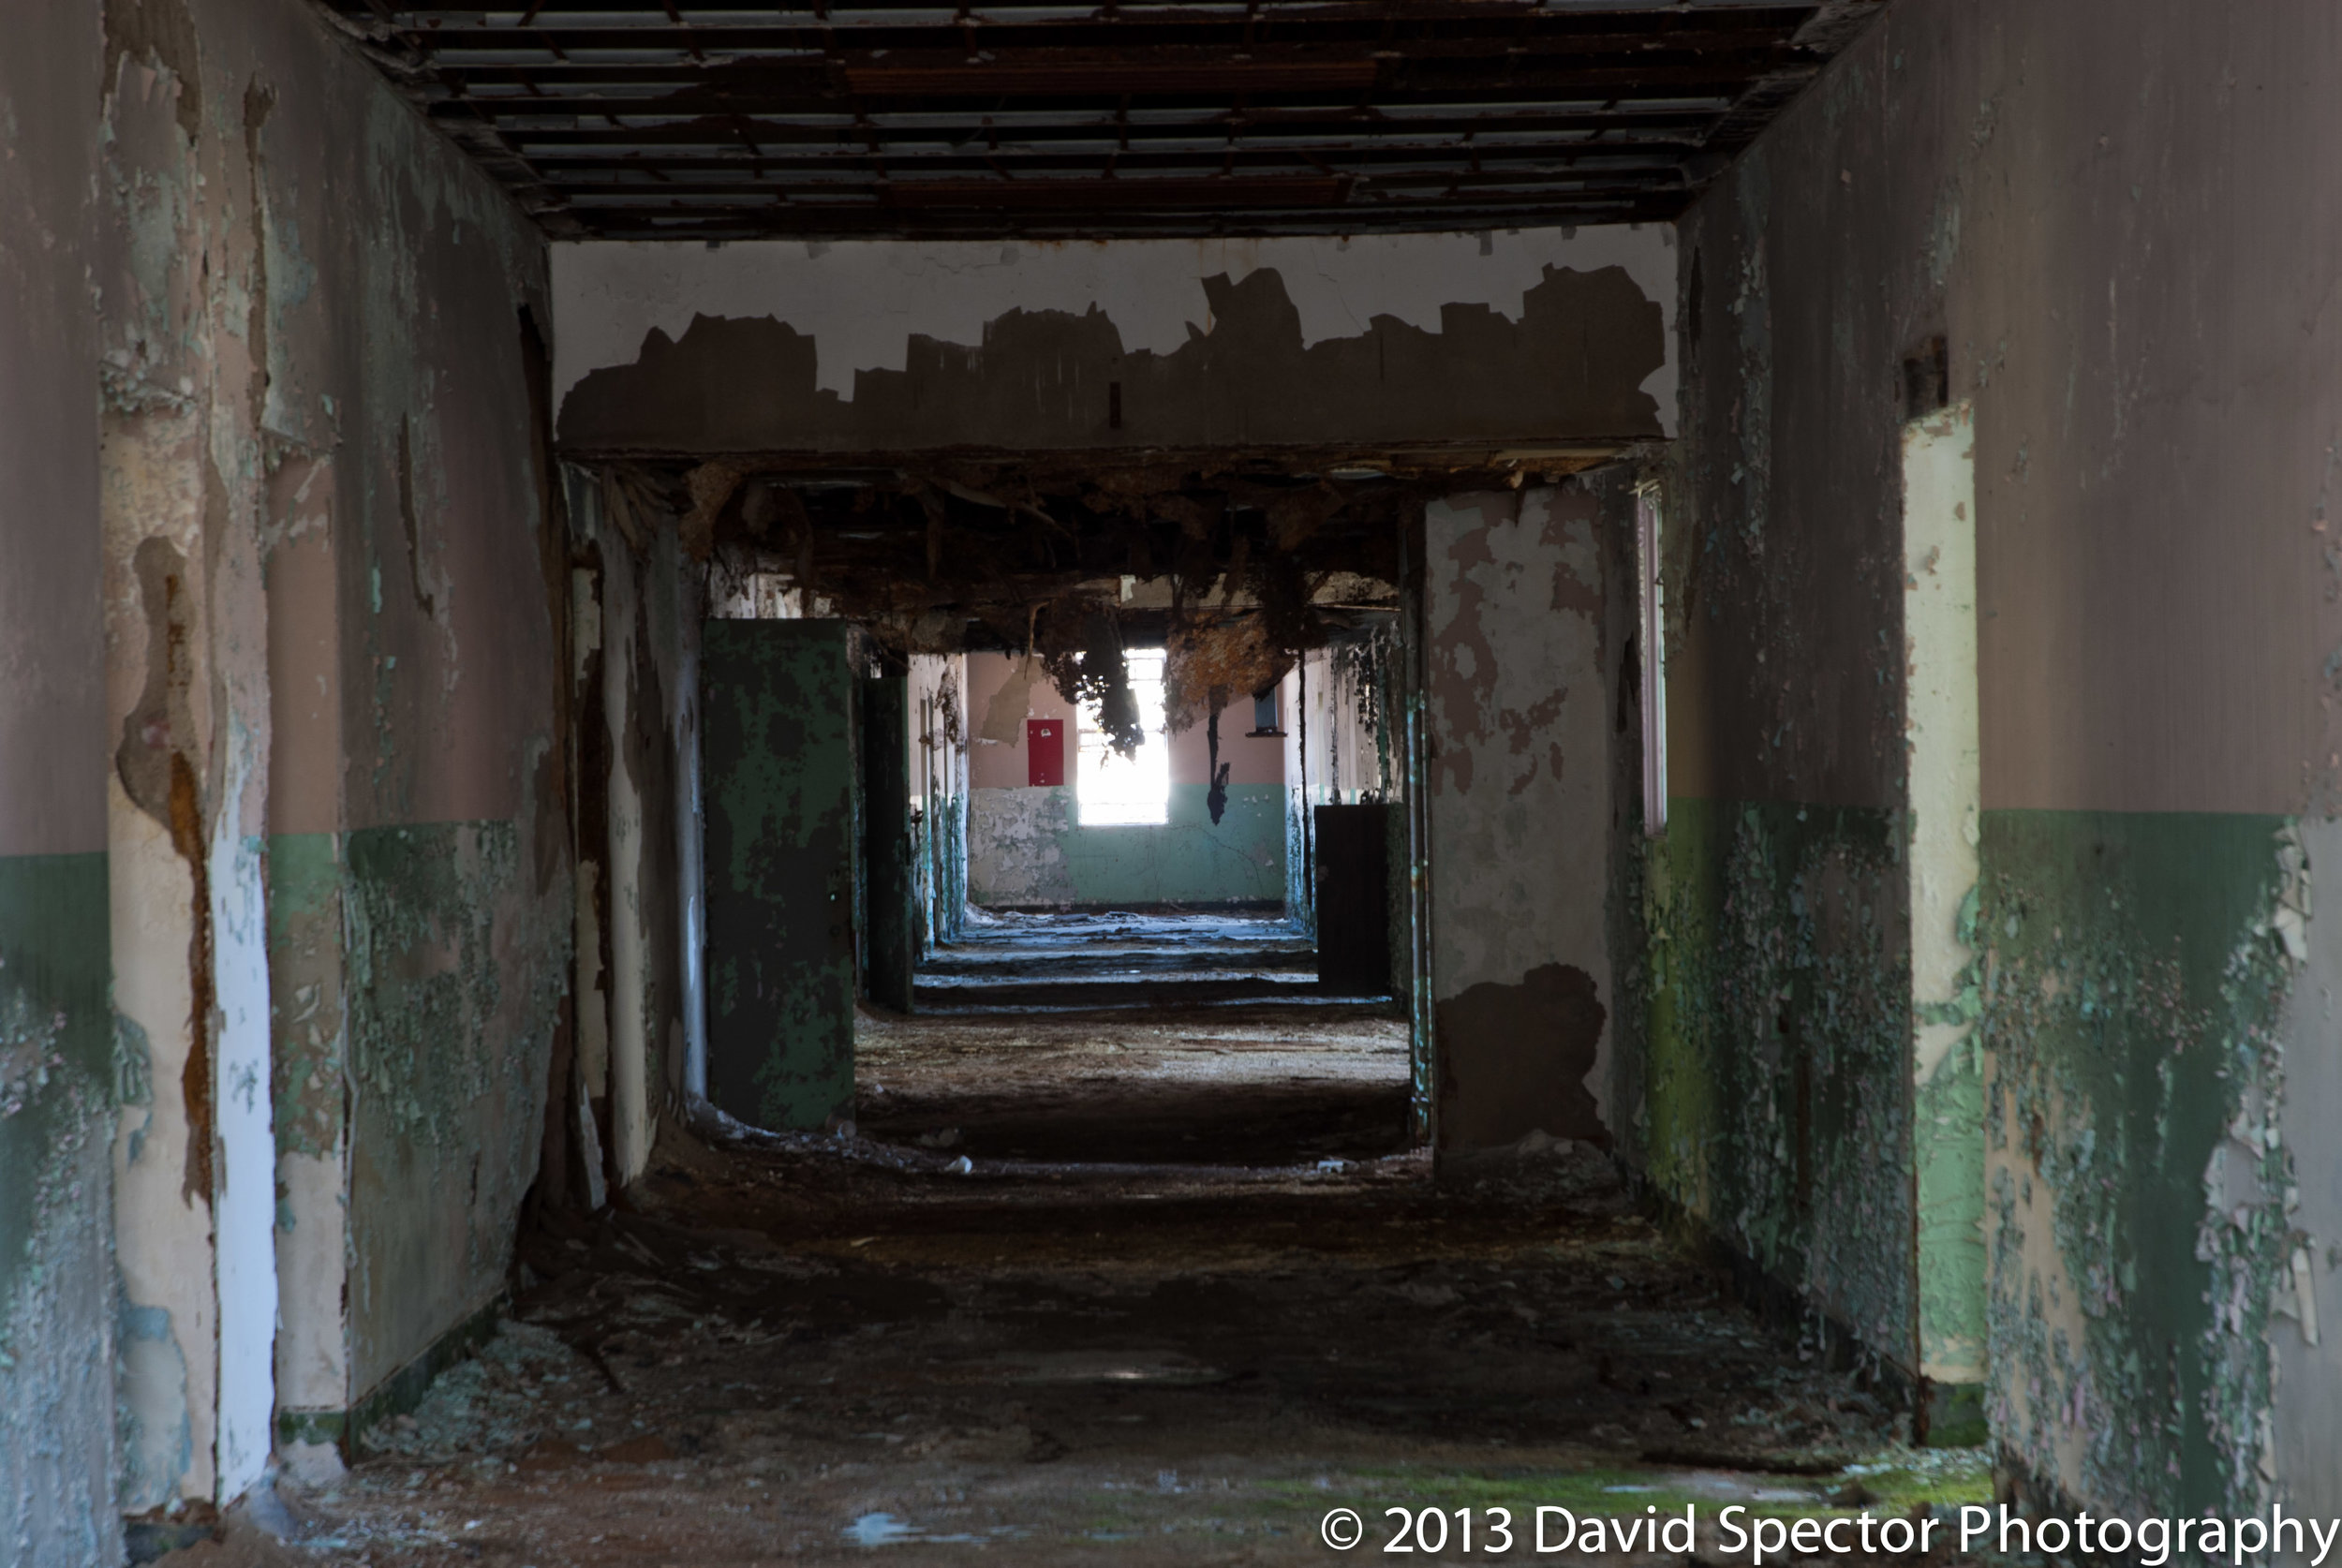 And another hallway.